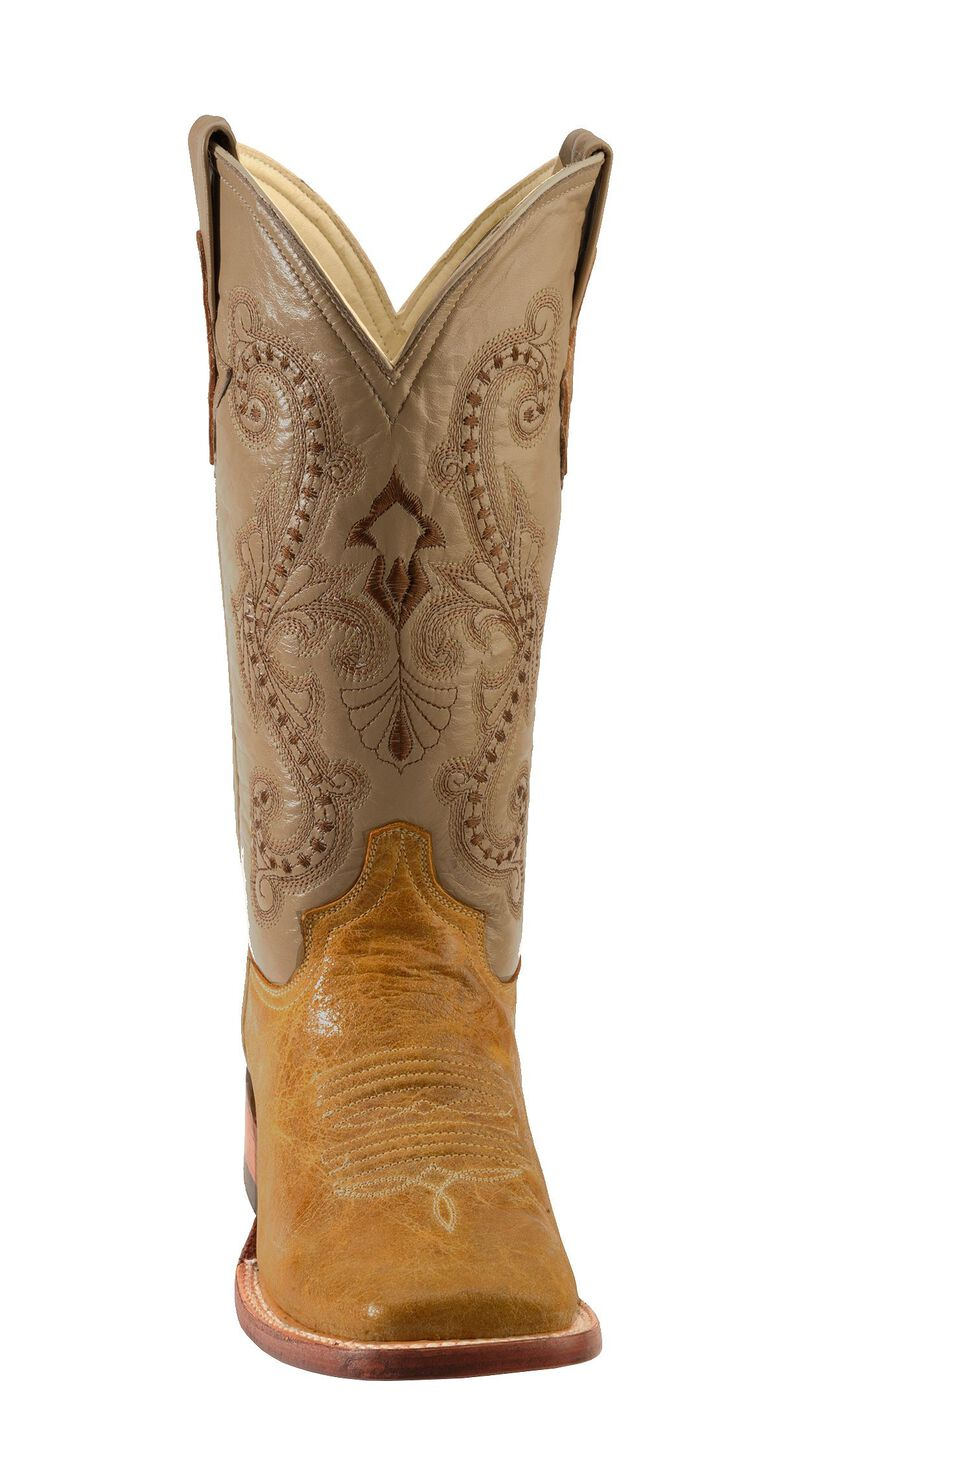 Ferrini Distressed Kangaroo Cowgirl Boots - Wide Square Toe, Antique Saddle, hi-res